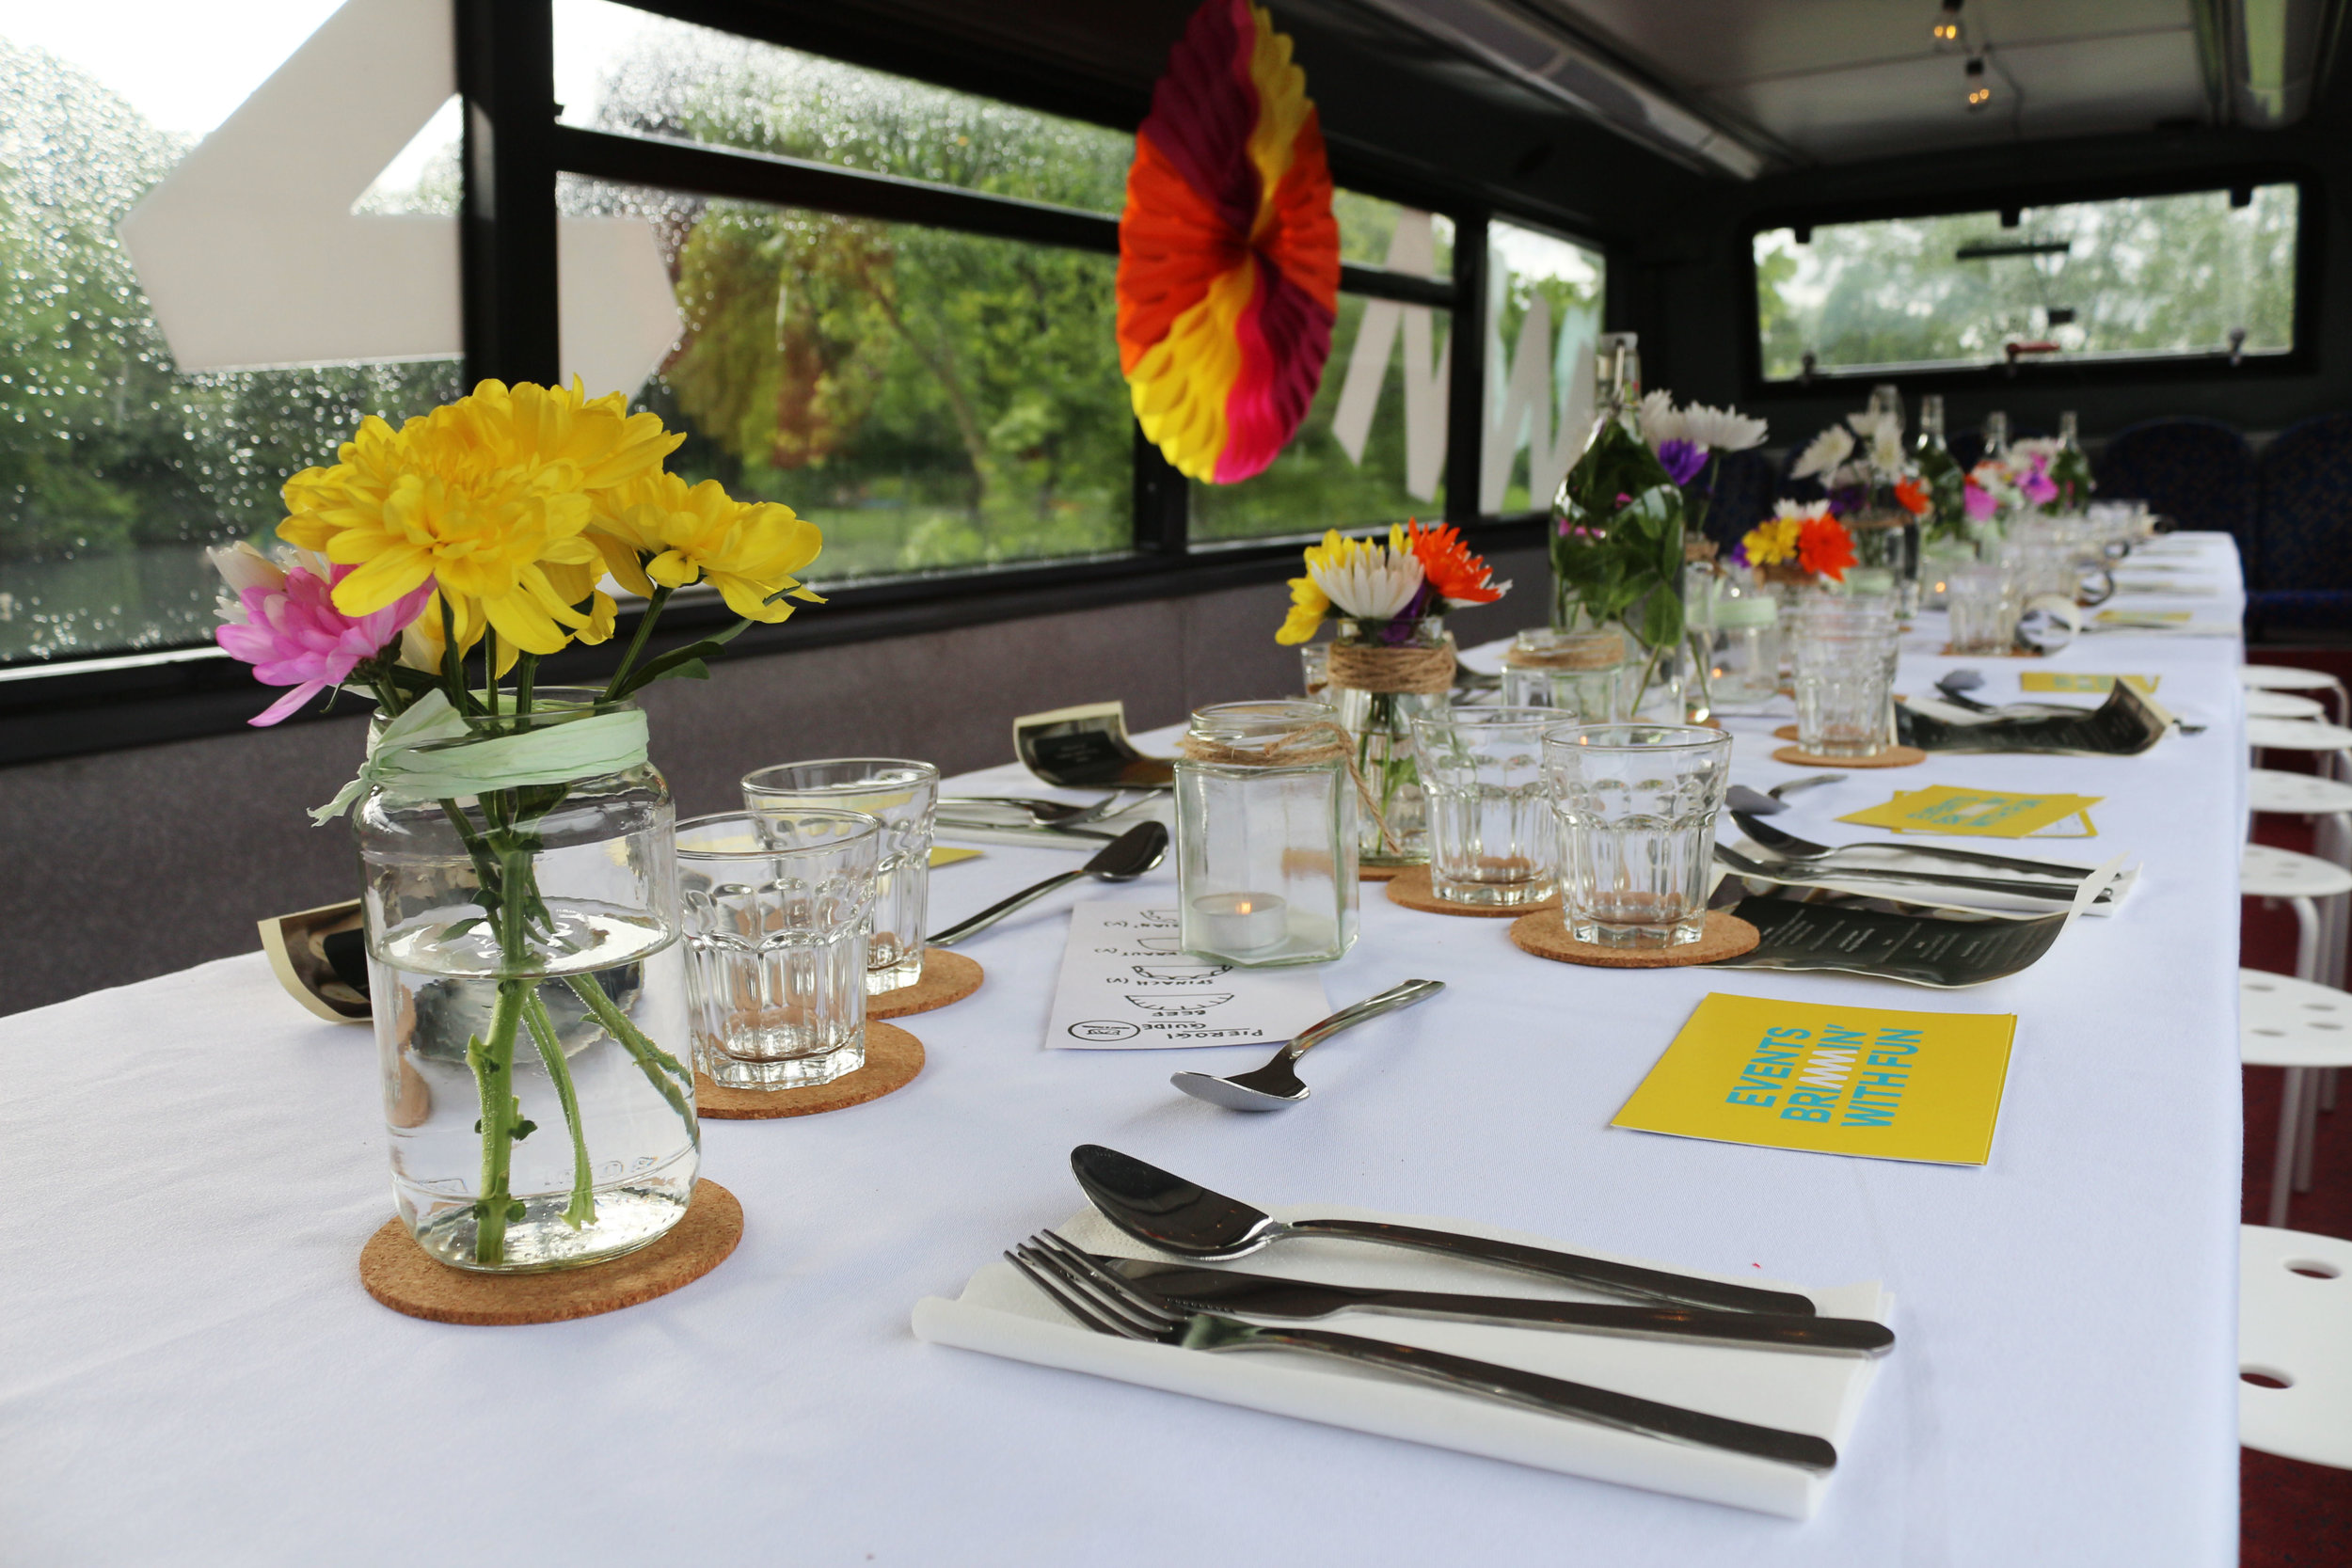 If you are interested in hosting dinner on the bus for your own private event, drop us a line - hello@commonplaceevents.com